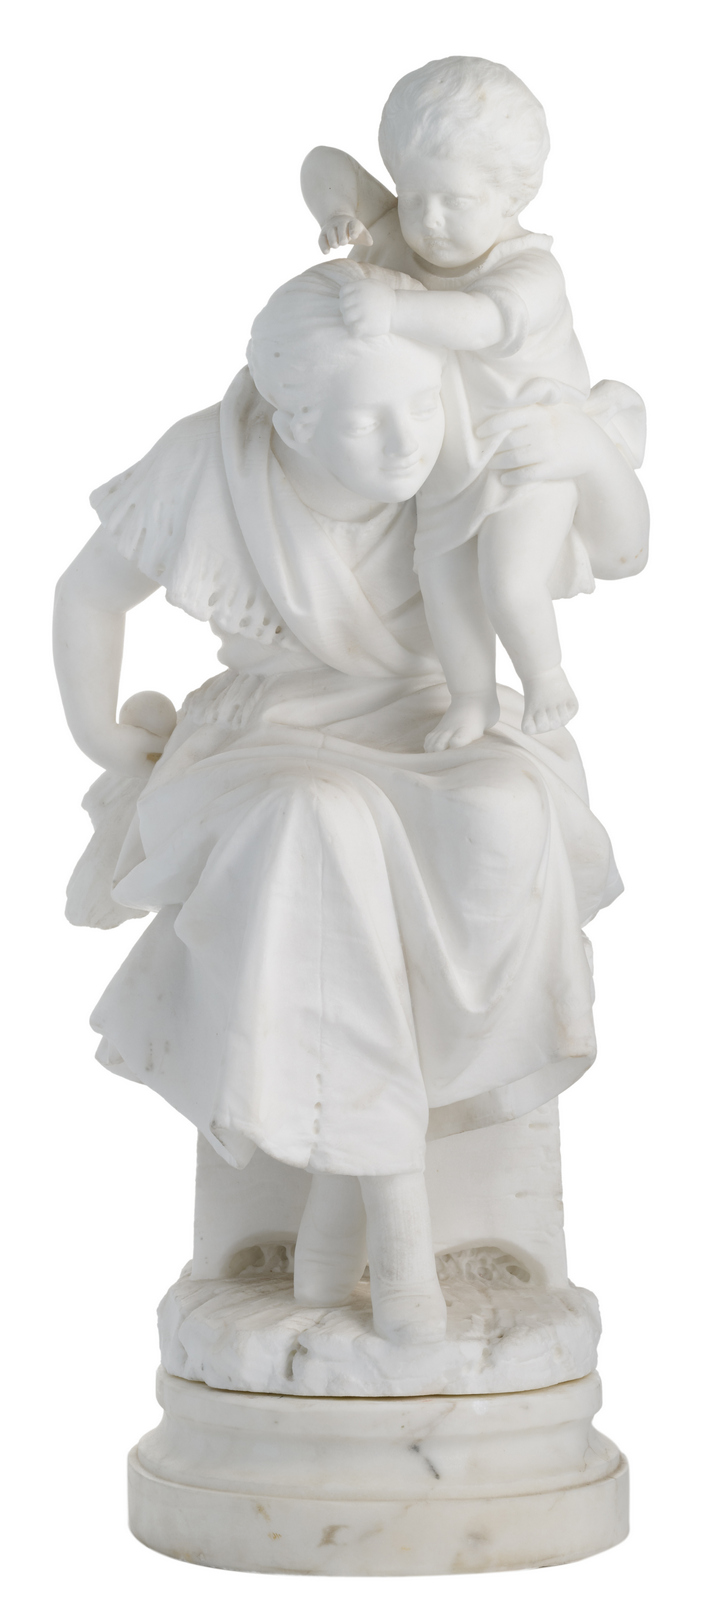 Carrier Belleuse E., motherly pleasures, modeled marble on a marble base, H 67 (without base) - 75 cm (with base)